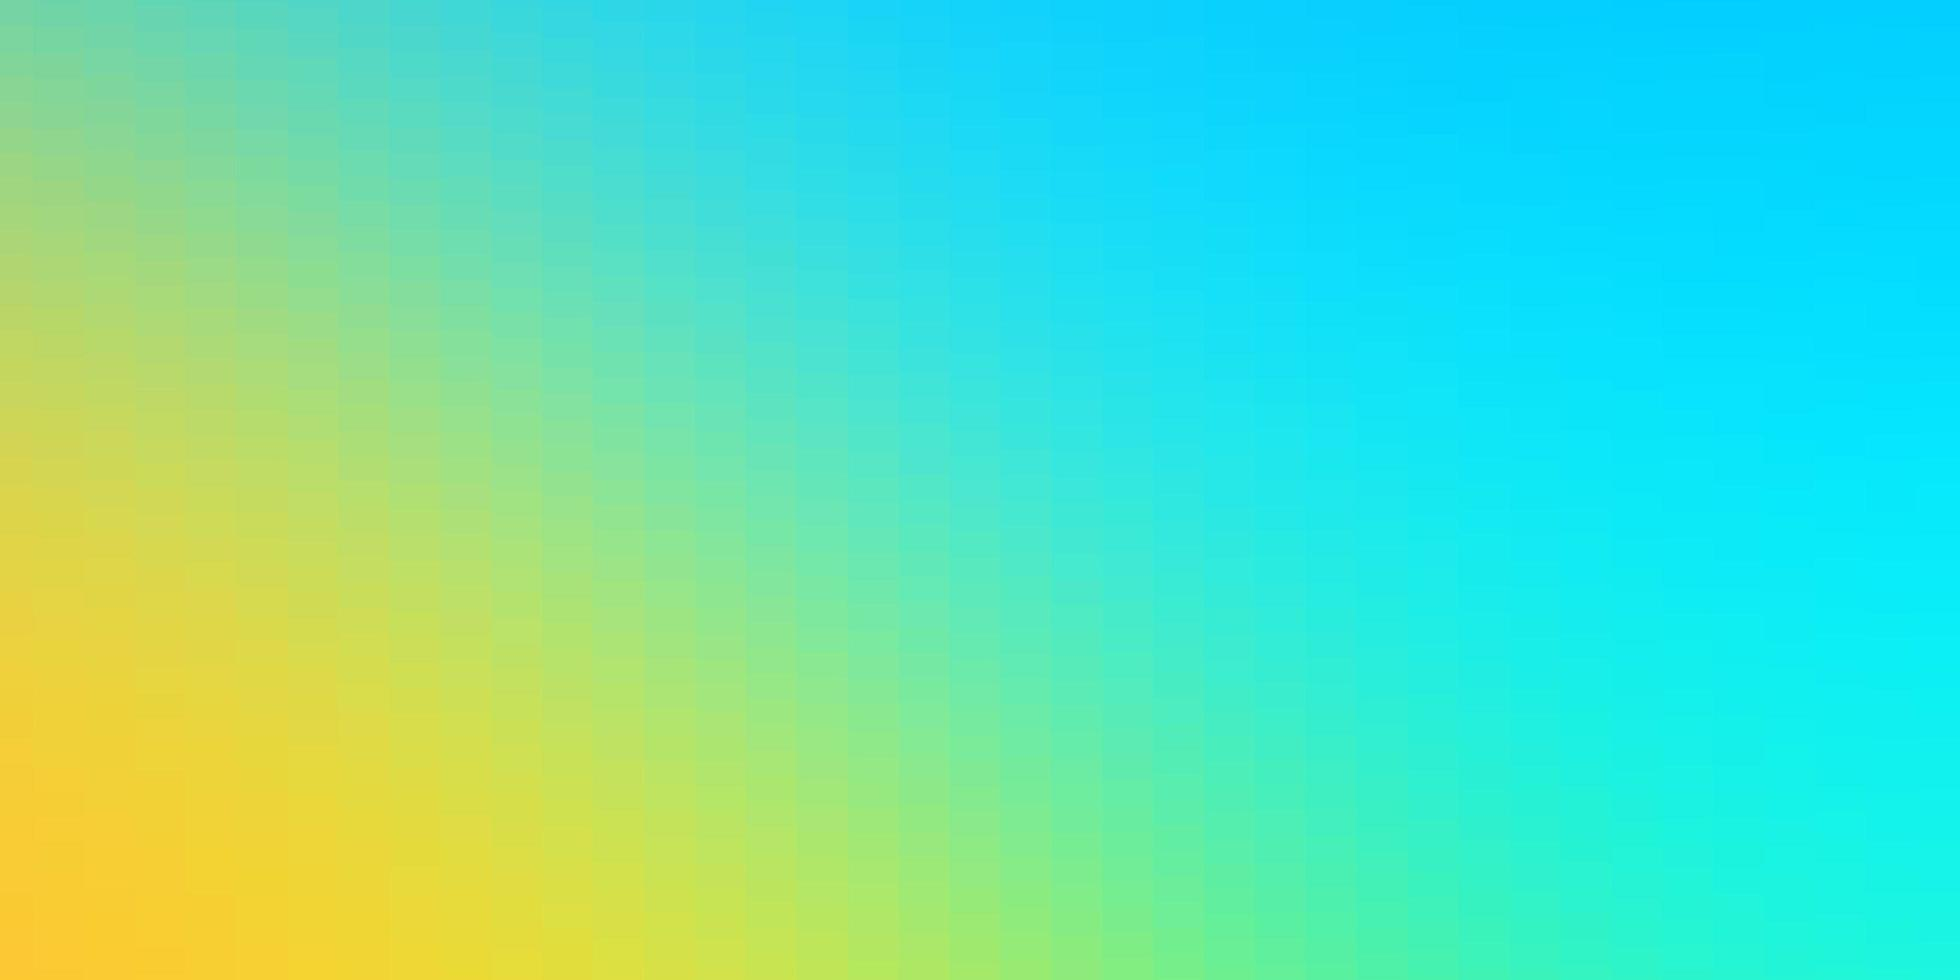 Light Blue, Yellow template with rectangles. vector